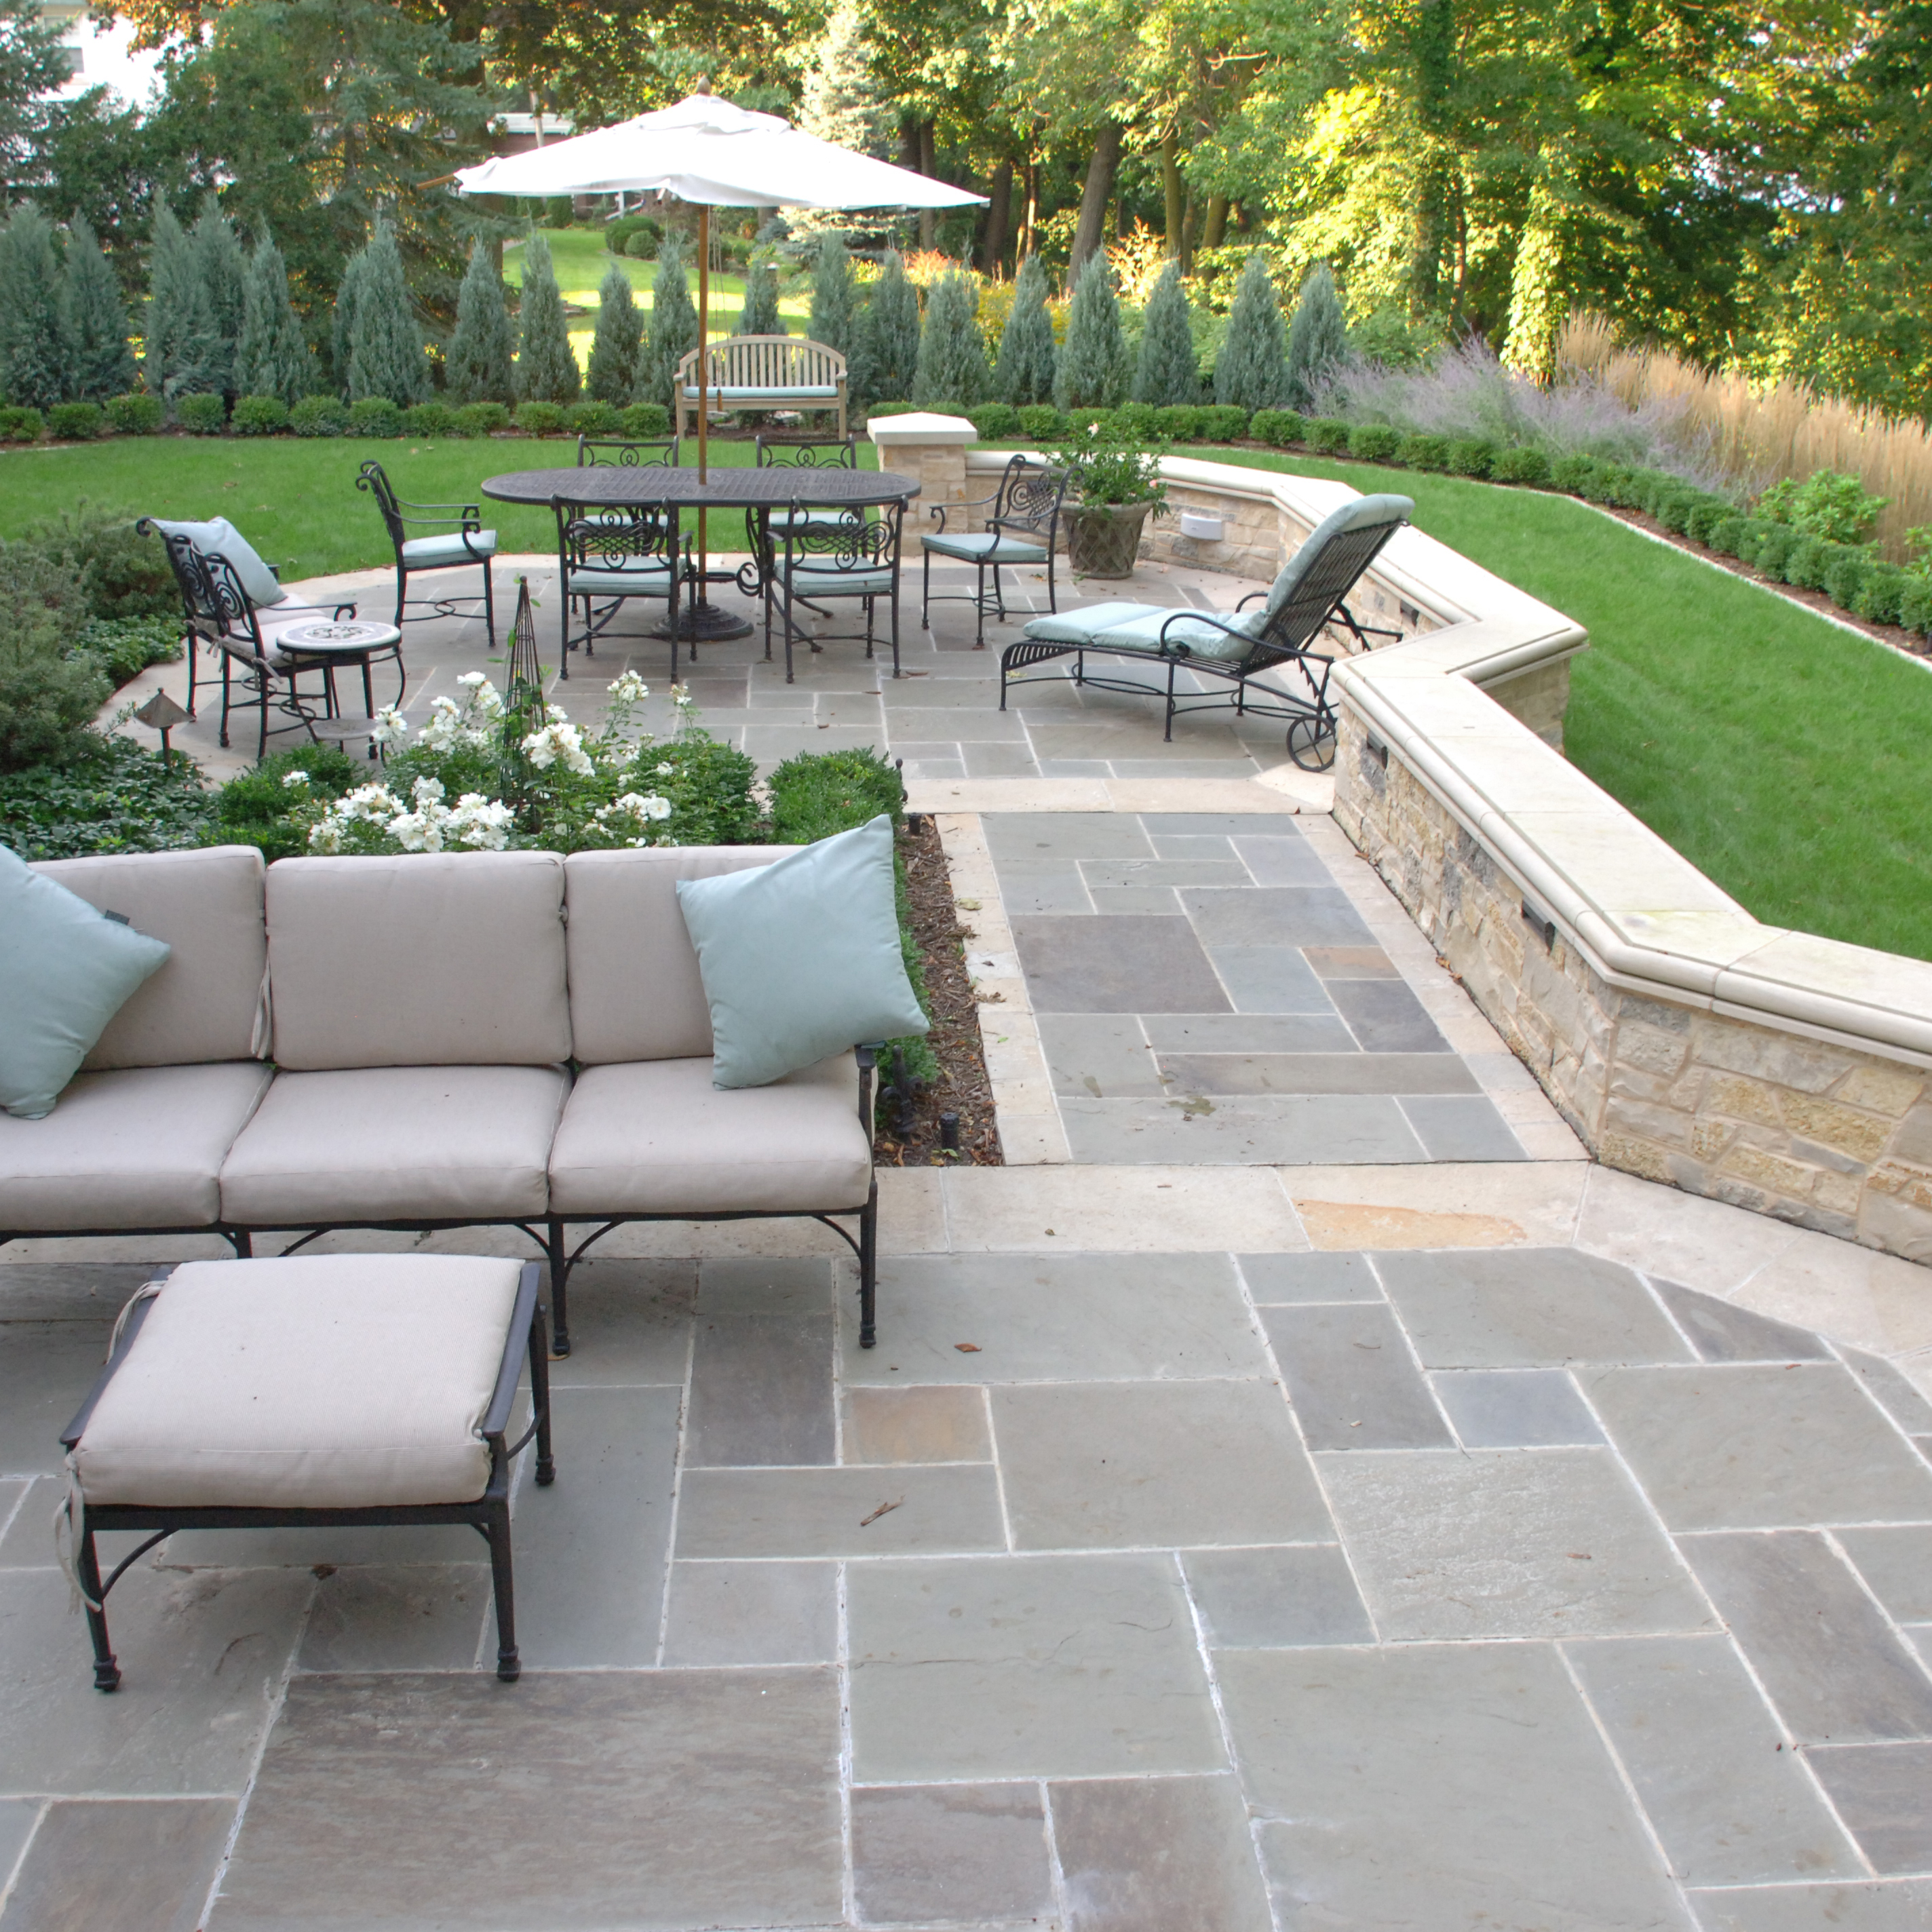 blue stone pavers bluestone pavers have a smooth, natural cleft finish that is rich with HQAQOBY